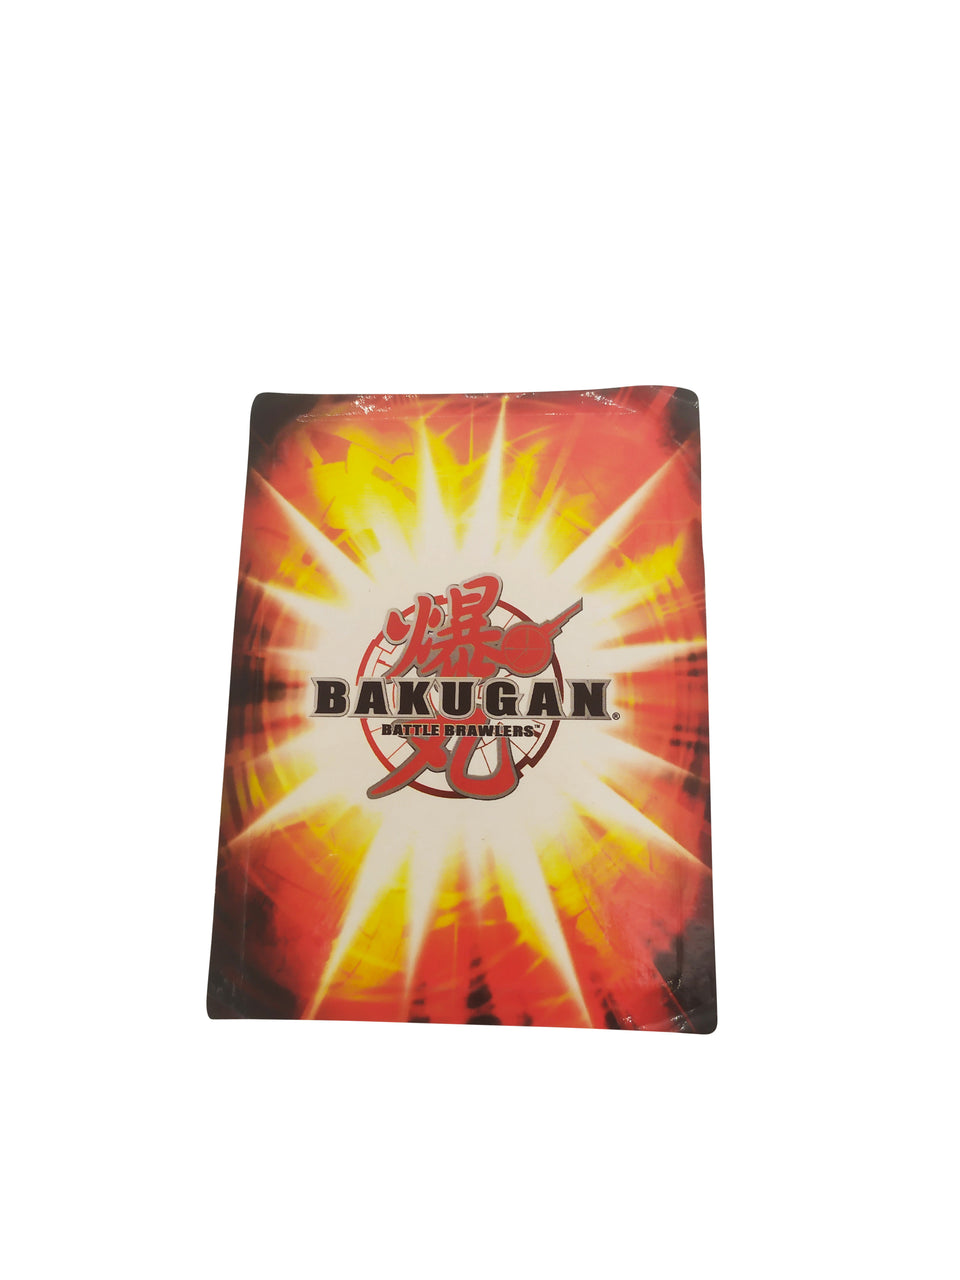 BAKUGAN BATTLE BRAWLERS - COLOR RED- special  short shadow 2011